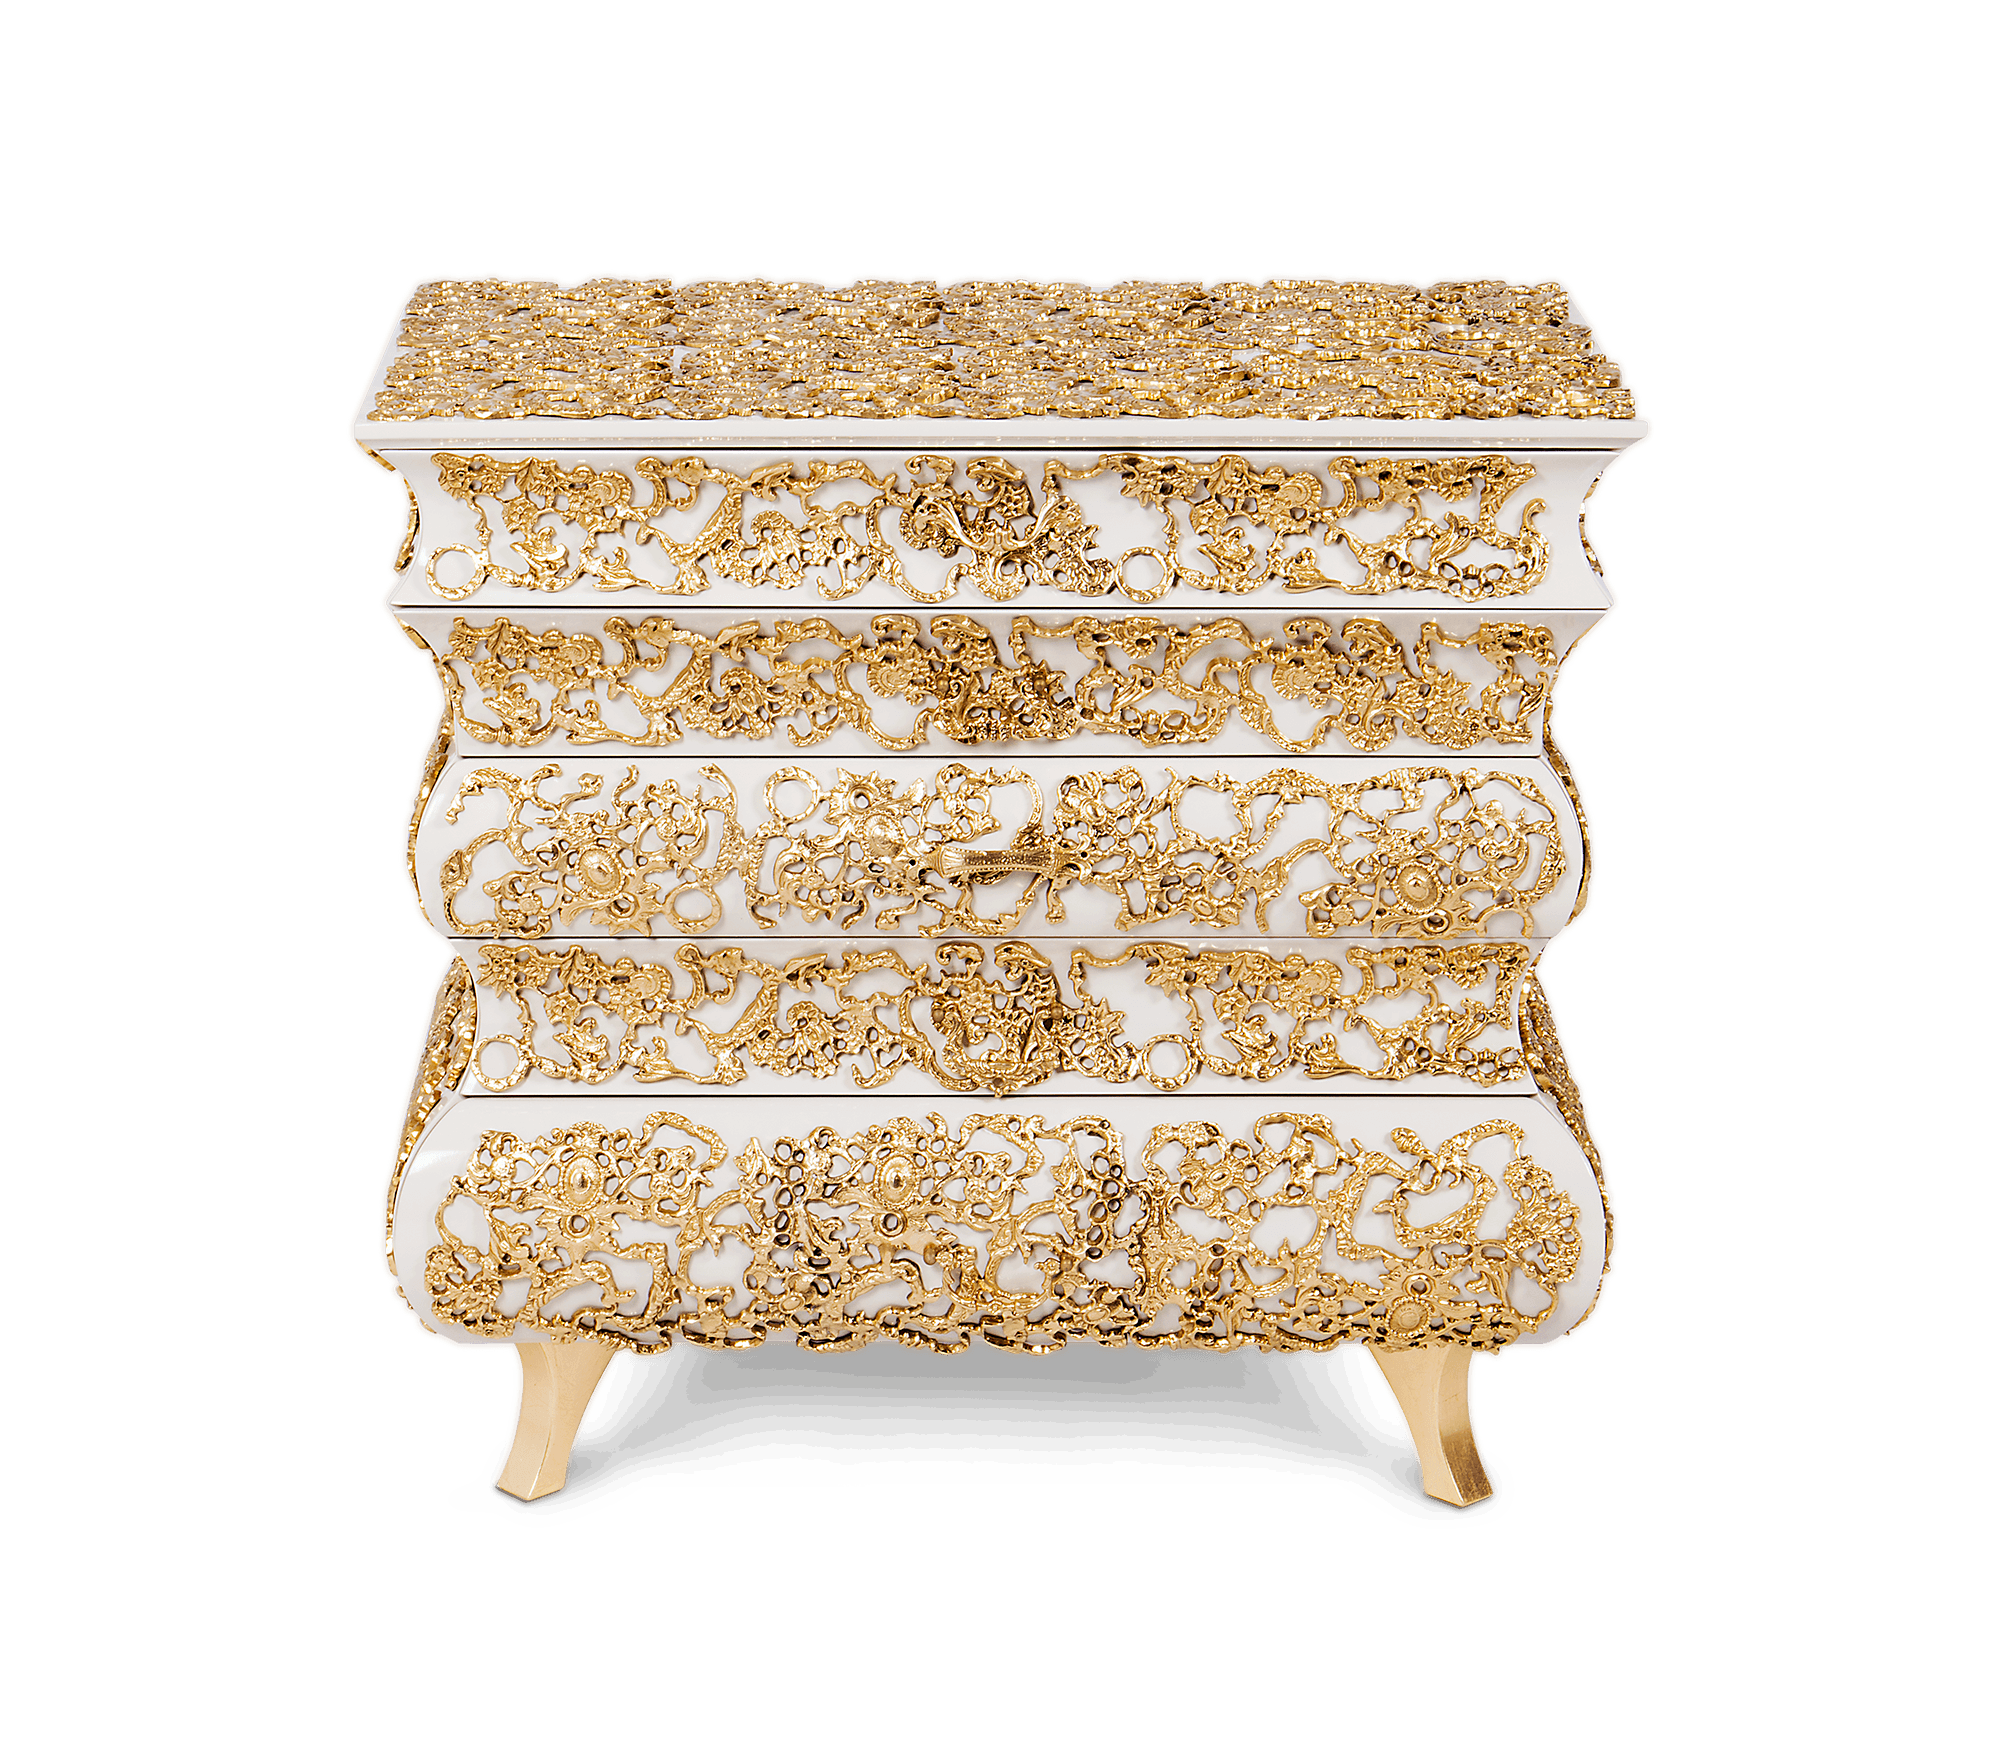 Crochet Nightstand by Boca do Lobo